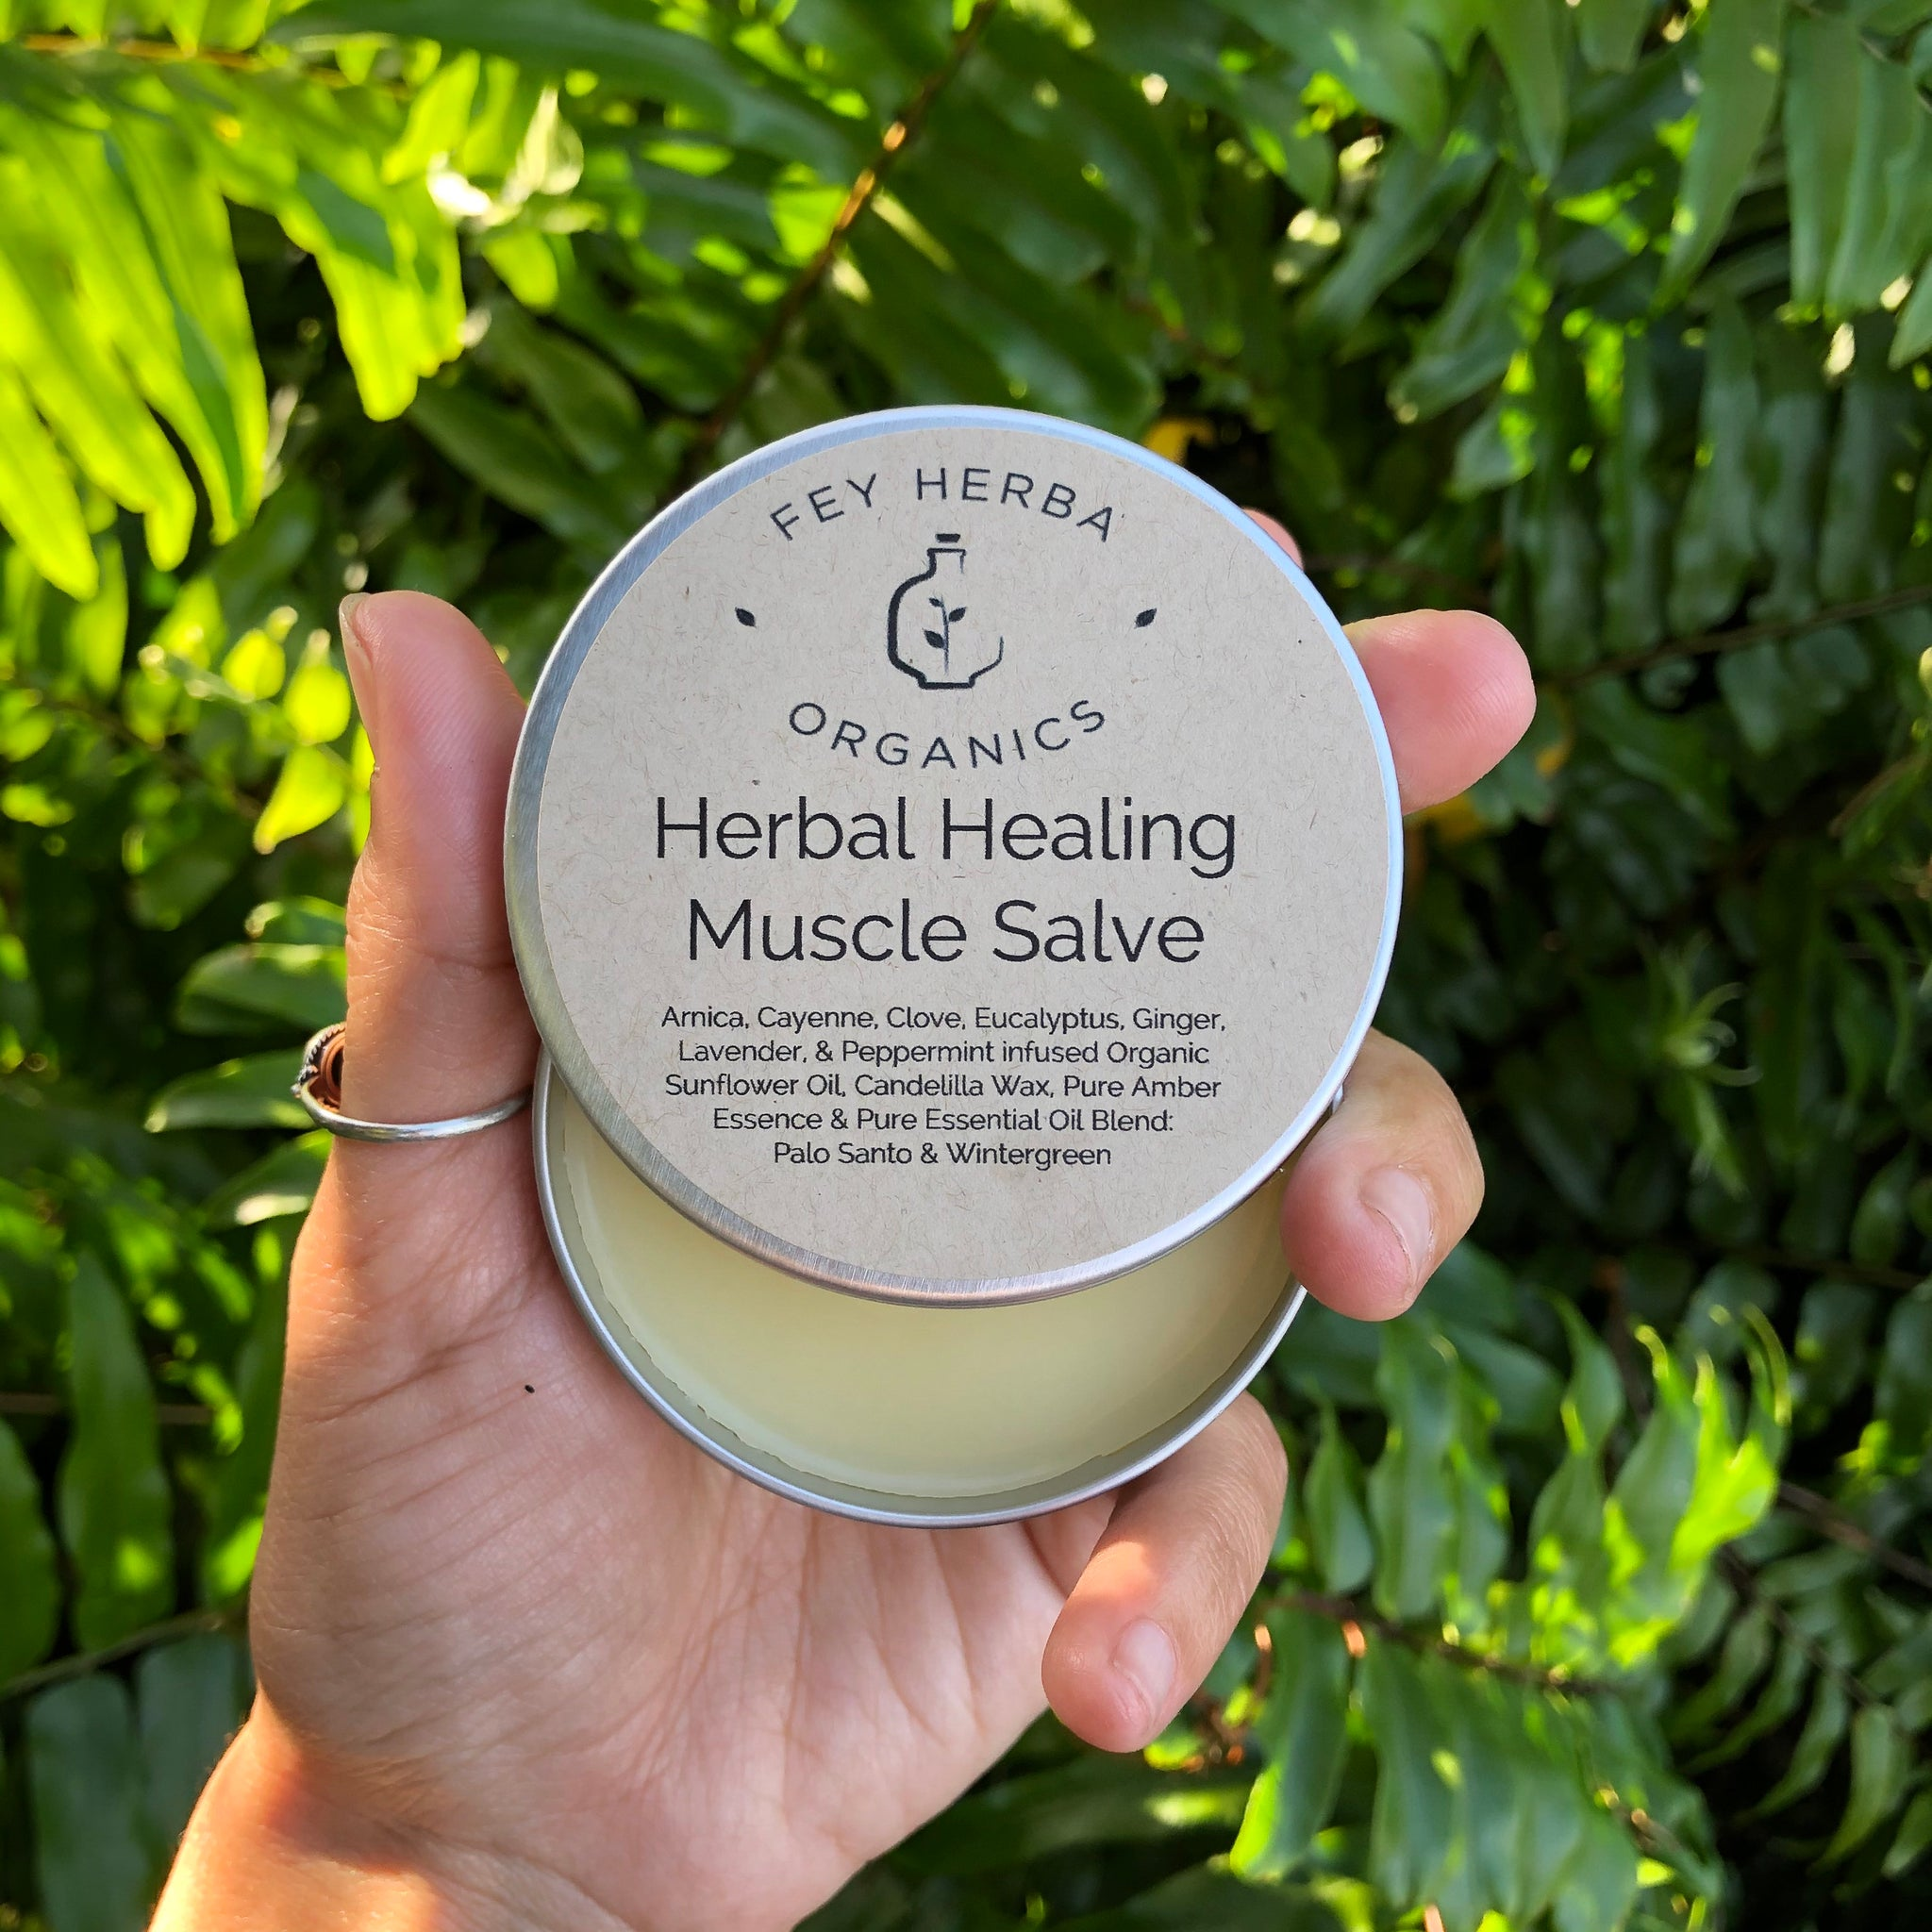 Herbal Healing Muscle Salve